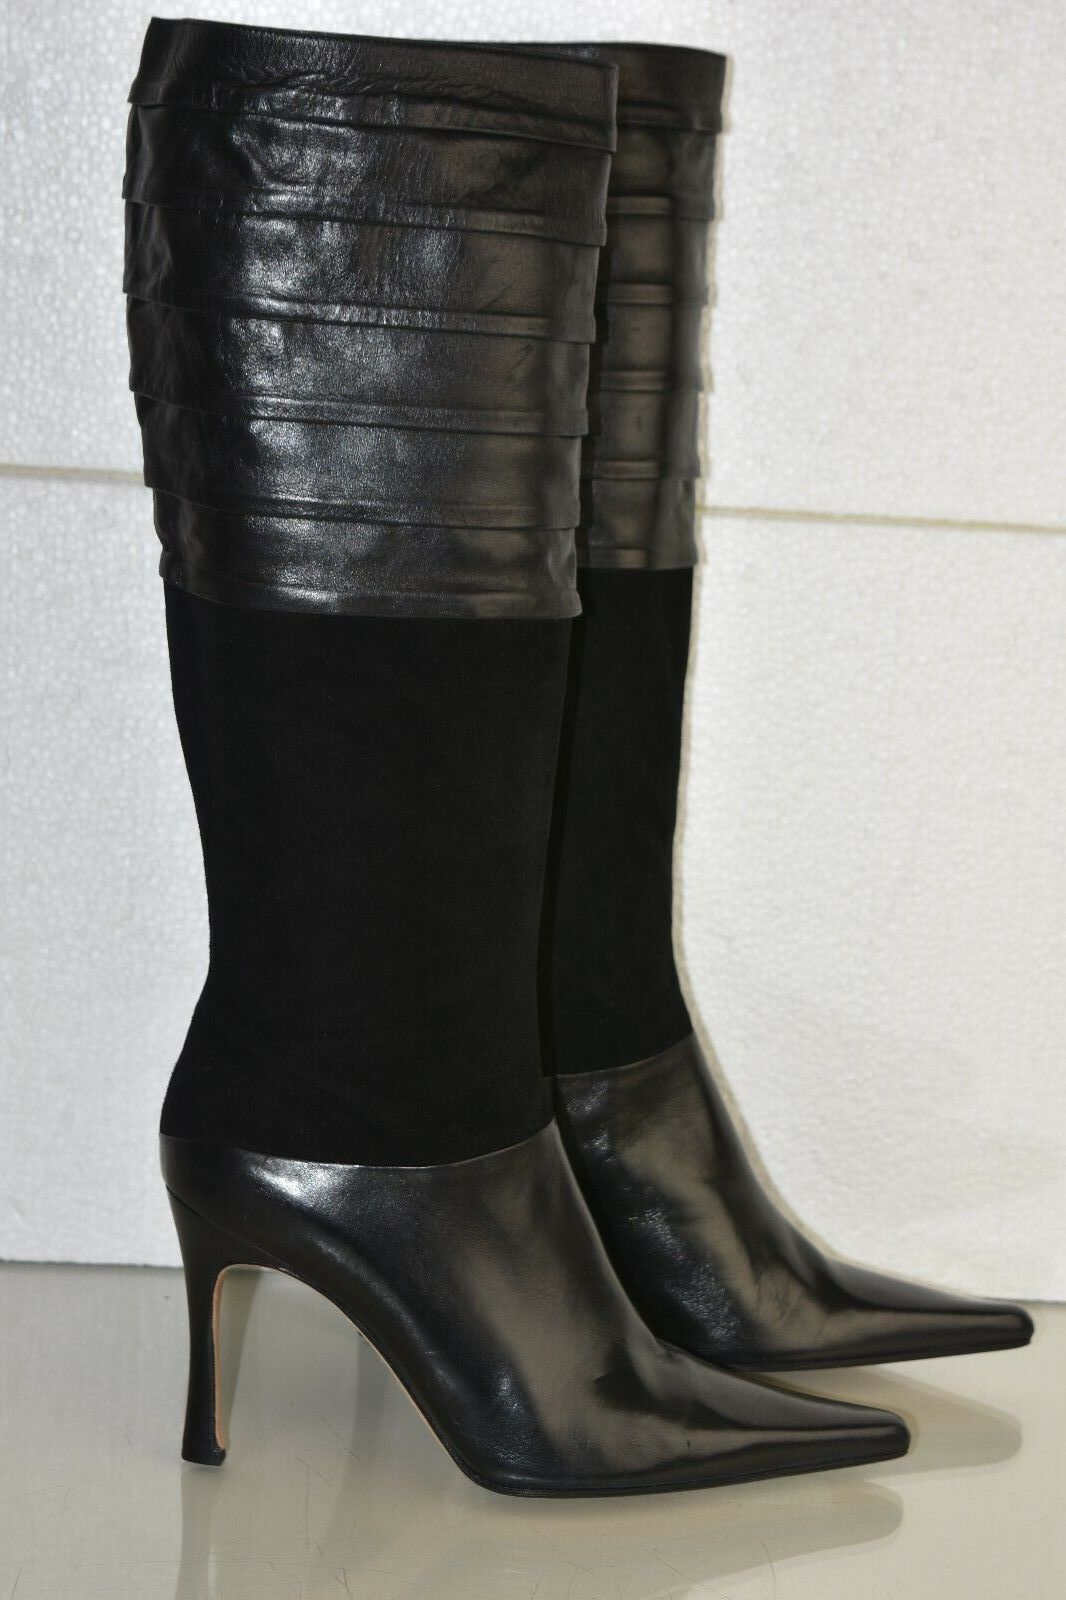 950 New RICKARD SHAH Knee High Boots Leather Suede Black Heels shoes 39.5 RARE